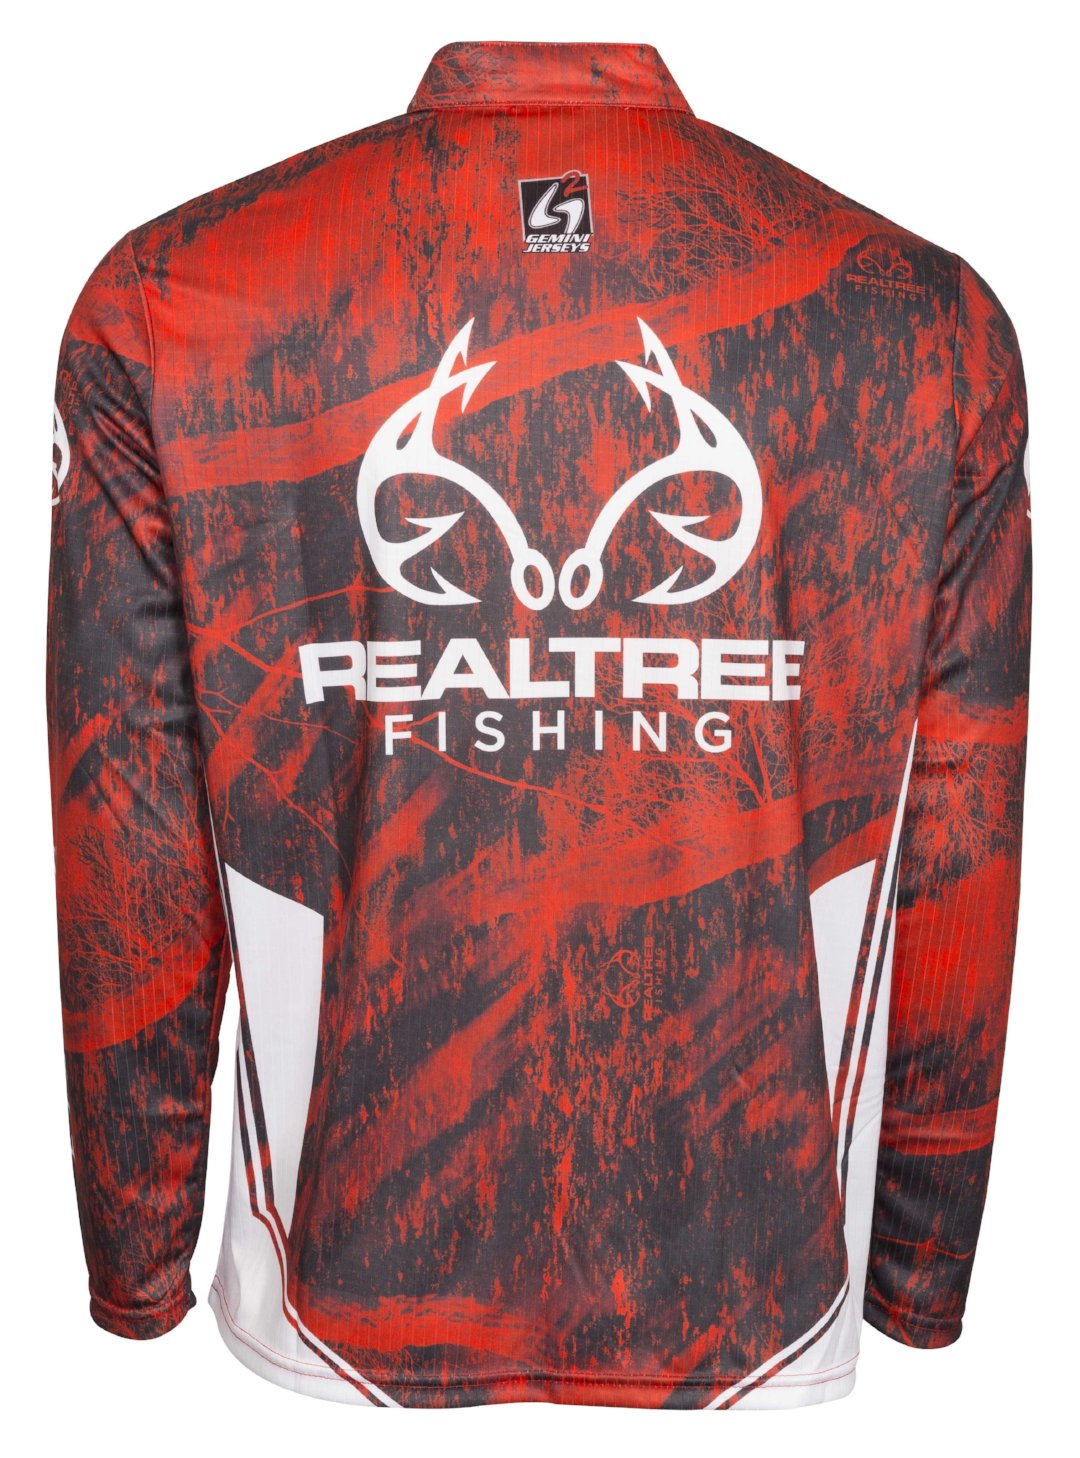 FLW Realtree Fishing Tactical Jersey